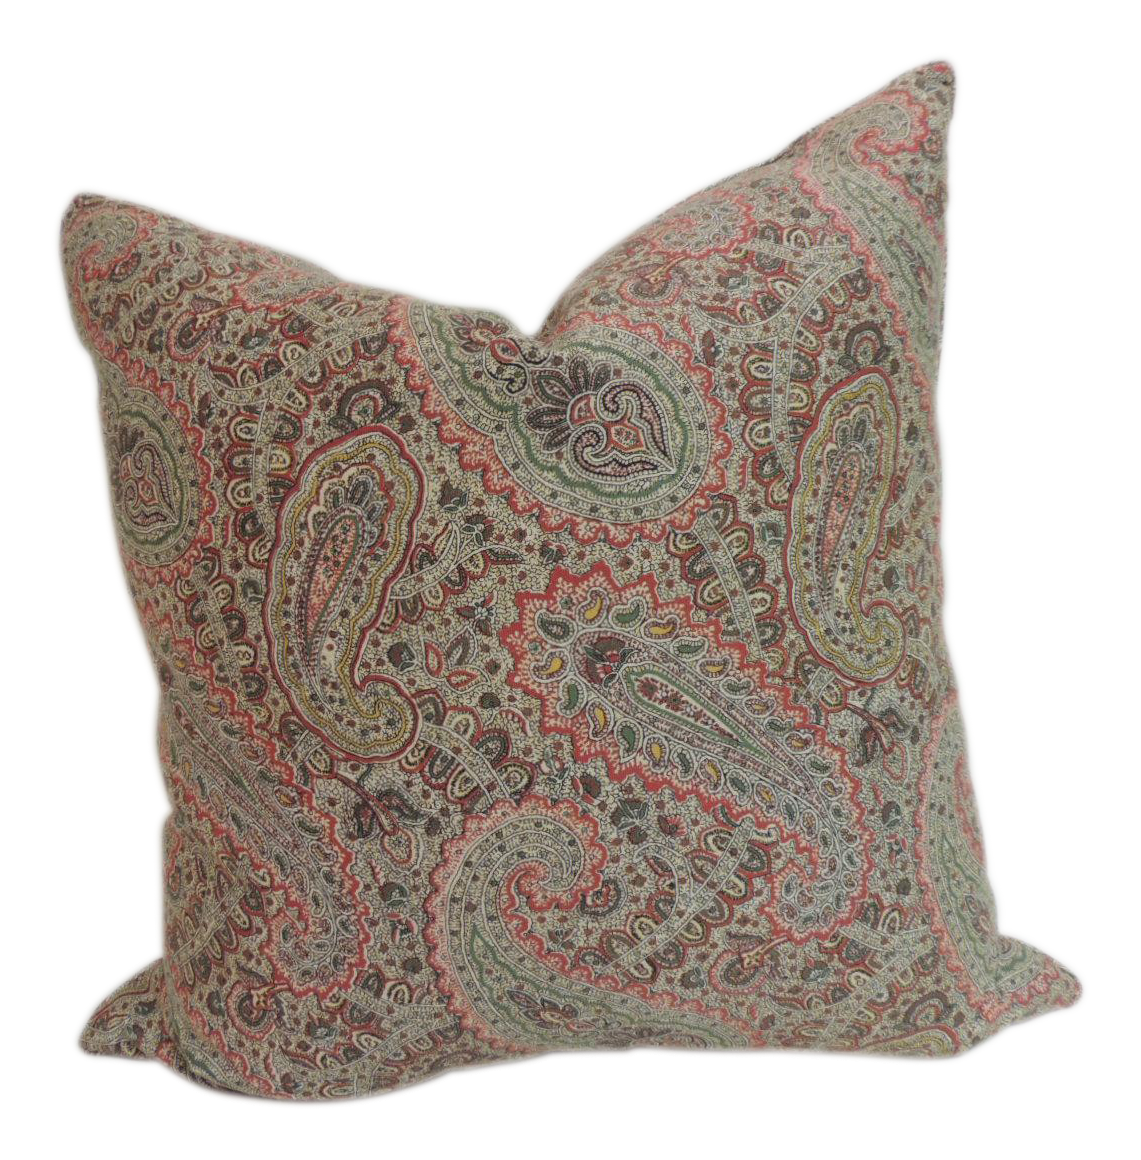 Ralph Lauren Decorative Couch Pillows : Ralph Lauren Paisley Decorative Pillow Chairish